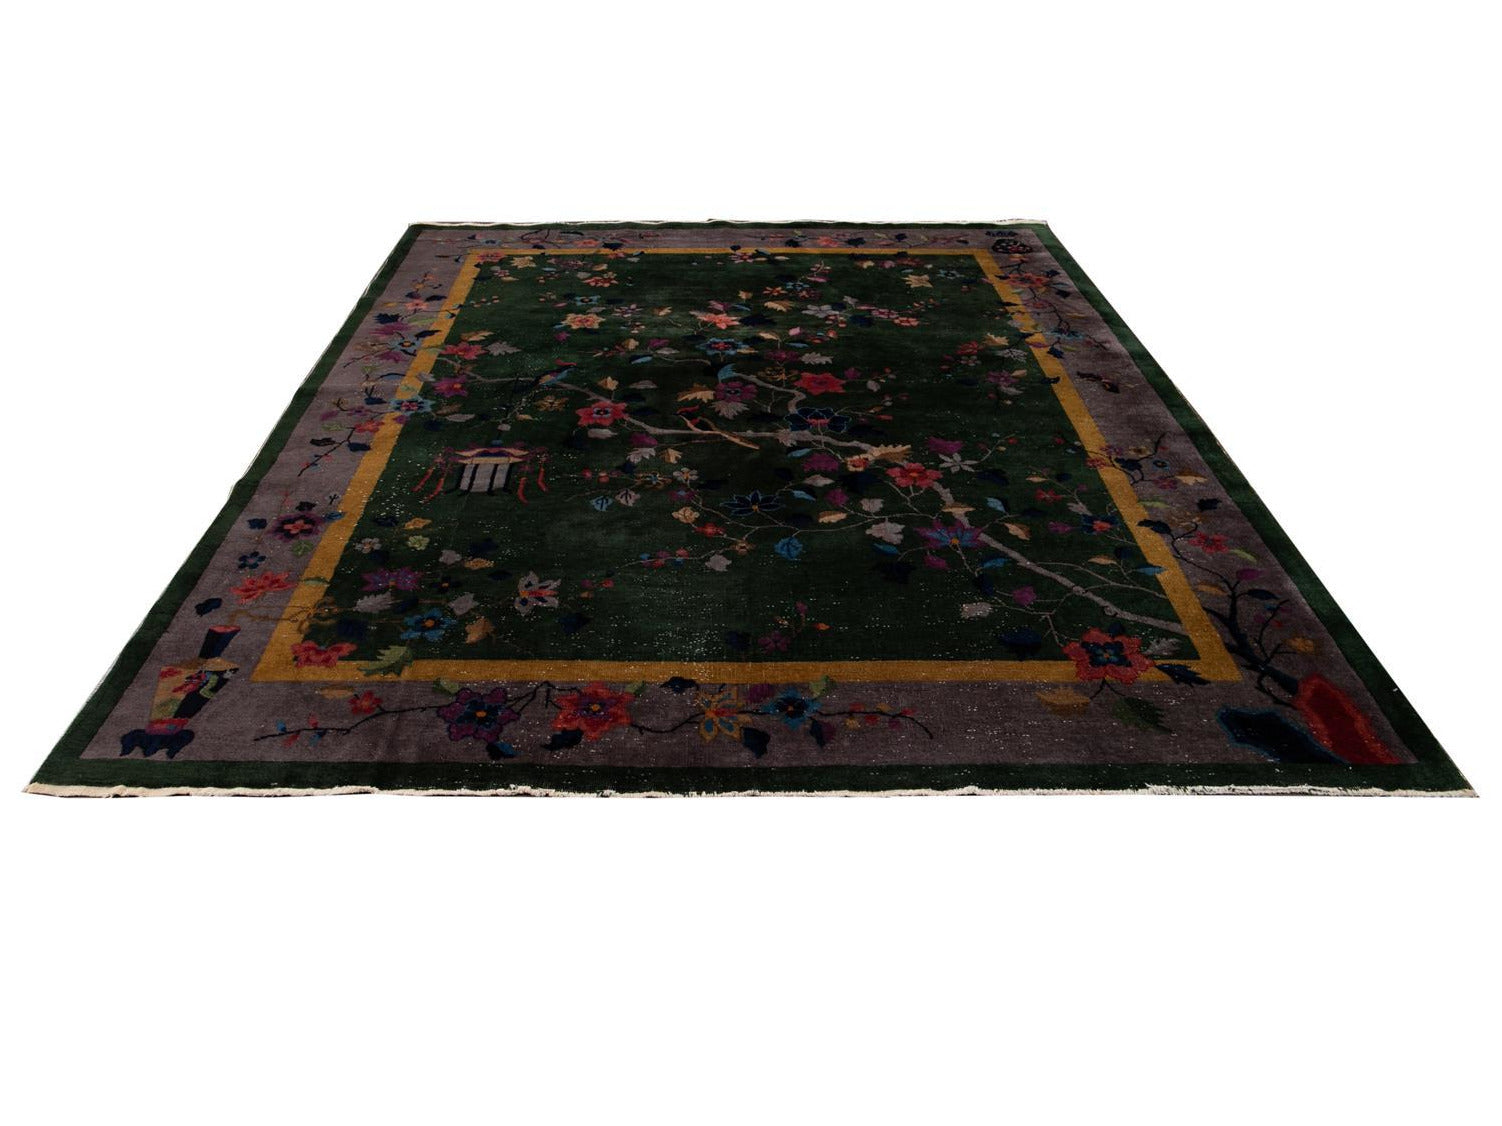 Antique Green Art Deco Chinese Wool Rug 8 X 10